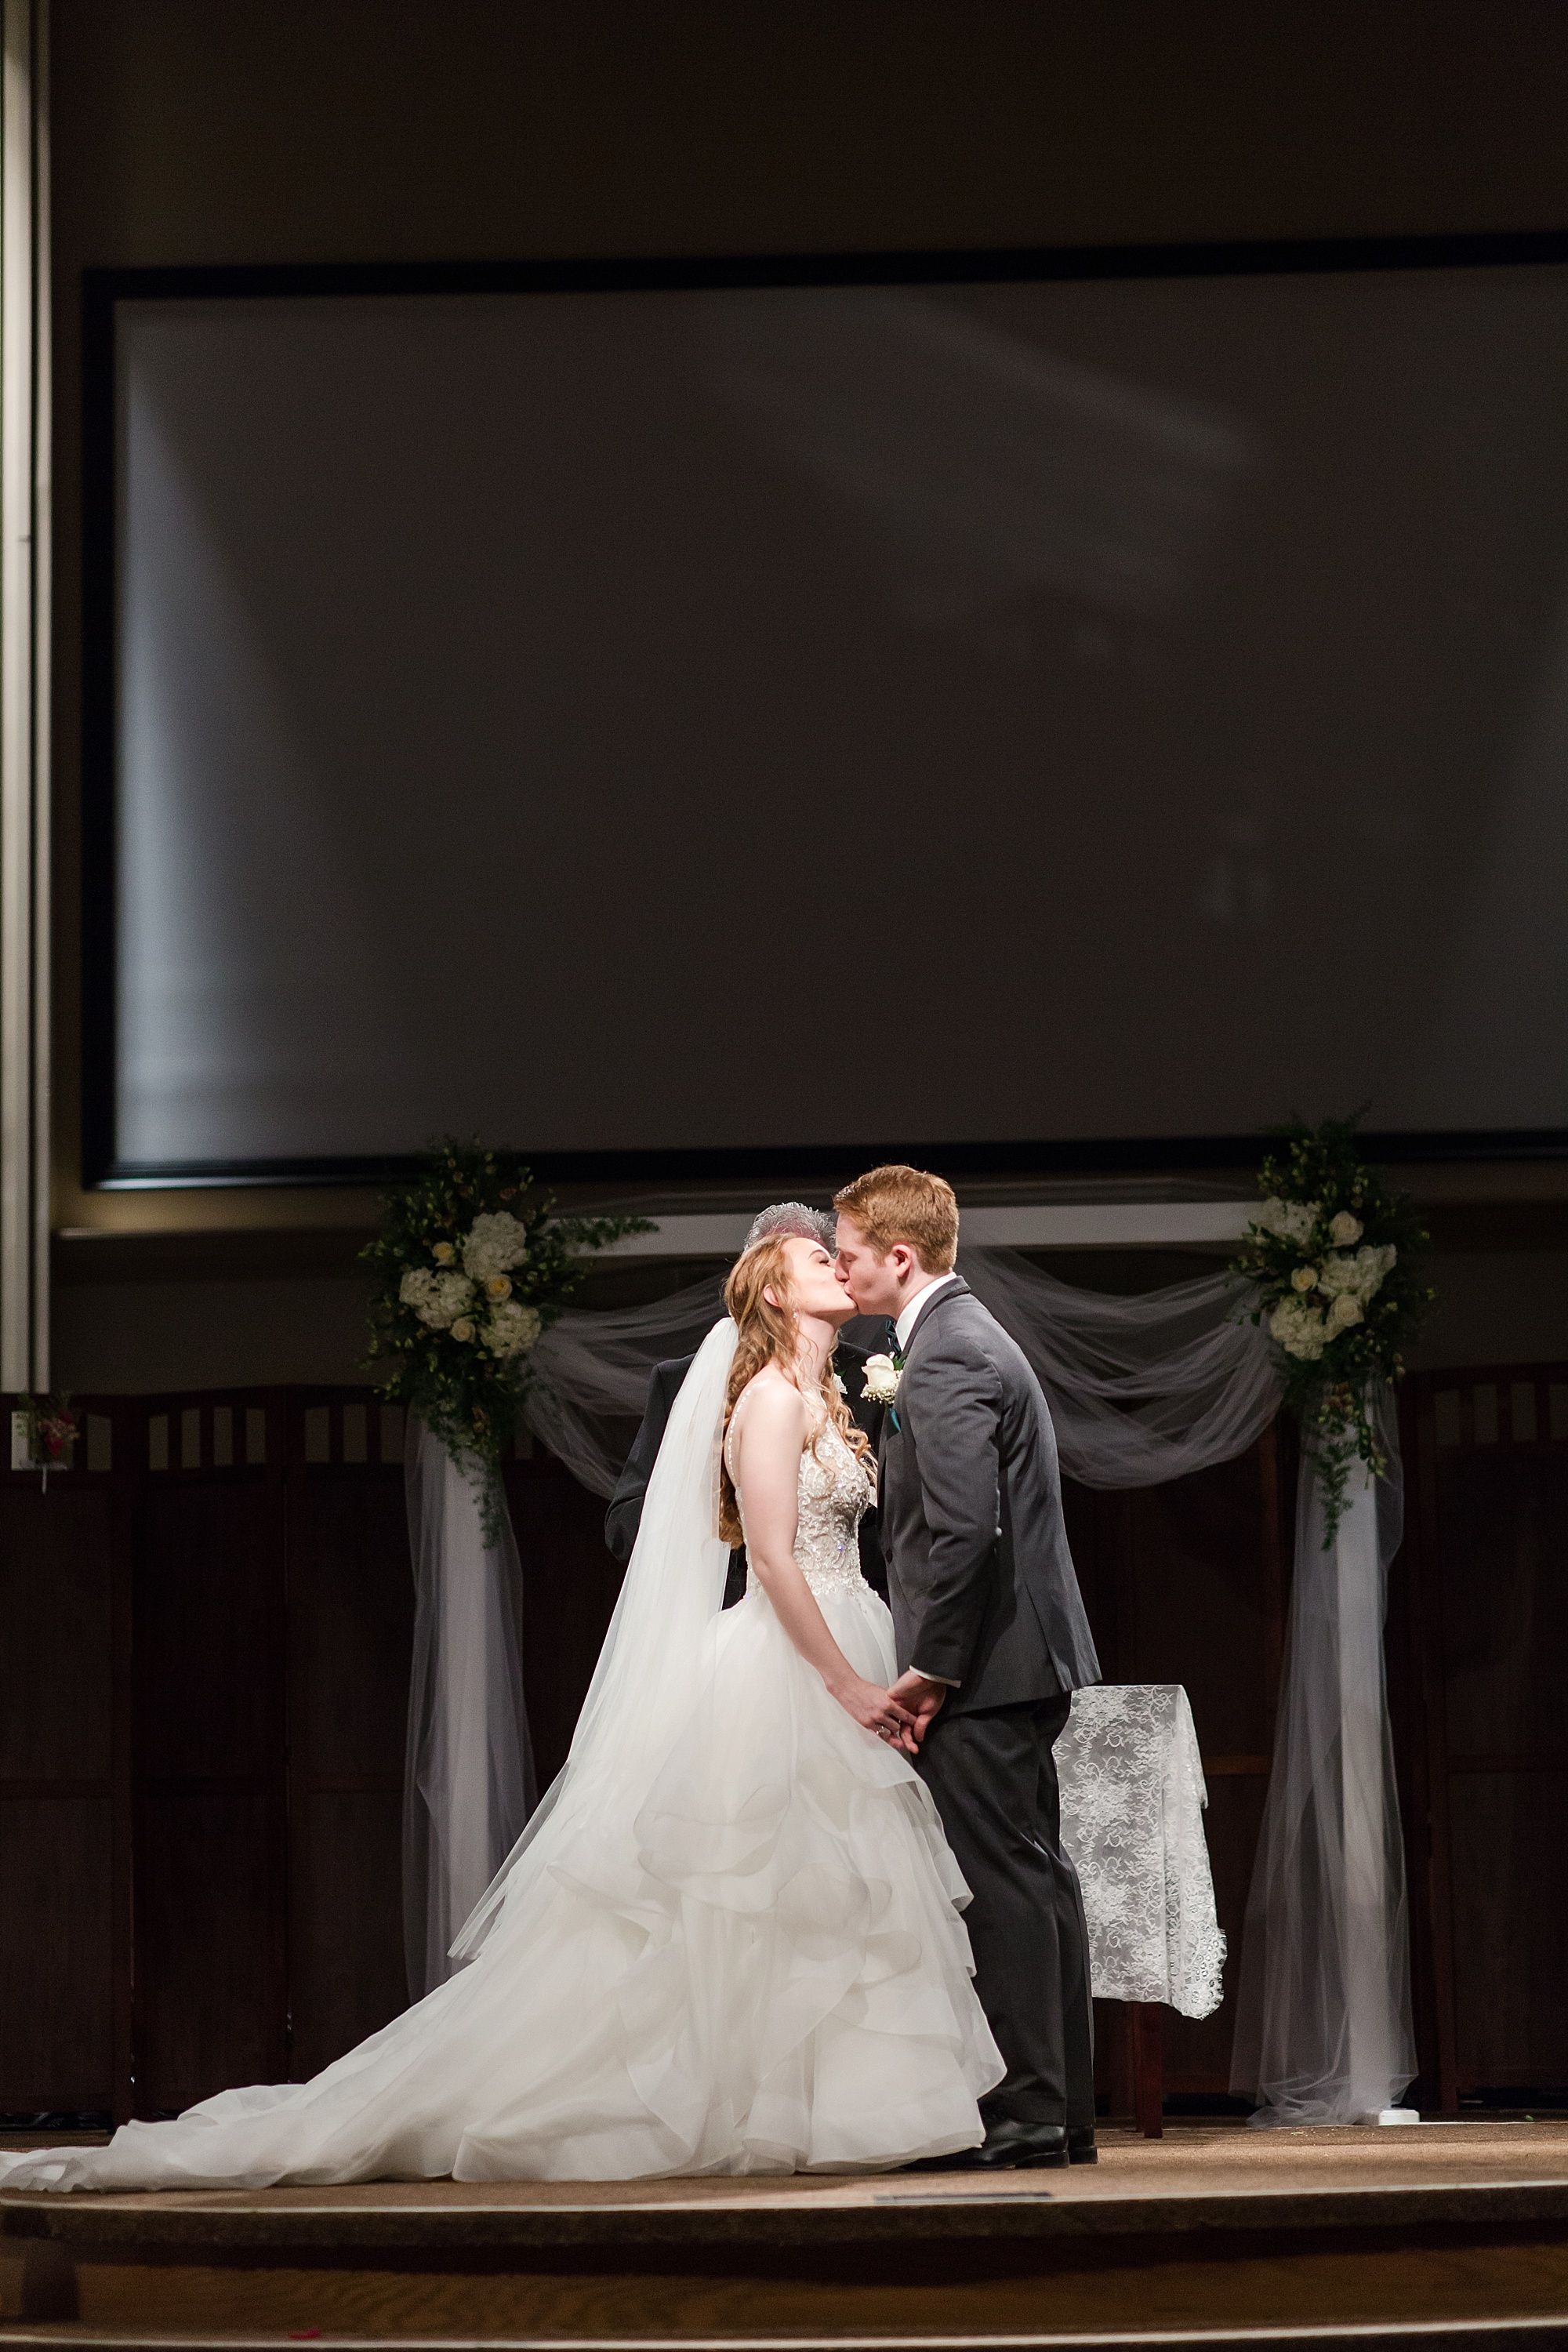 First Kiss In Wedding Ceremony In Church In 2020 Summer Wedding Wedding Wedding Photography Inspiration